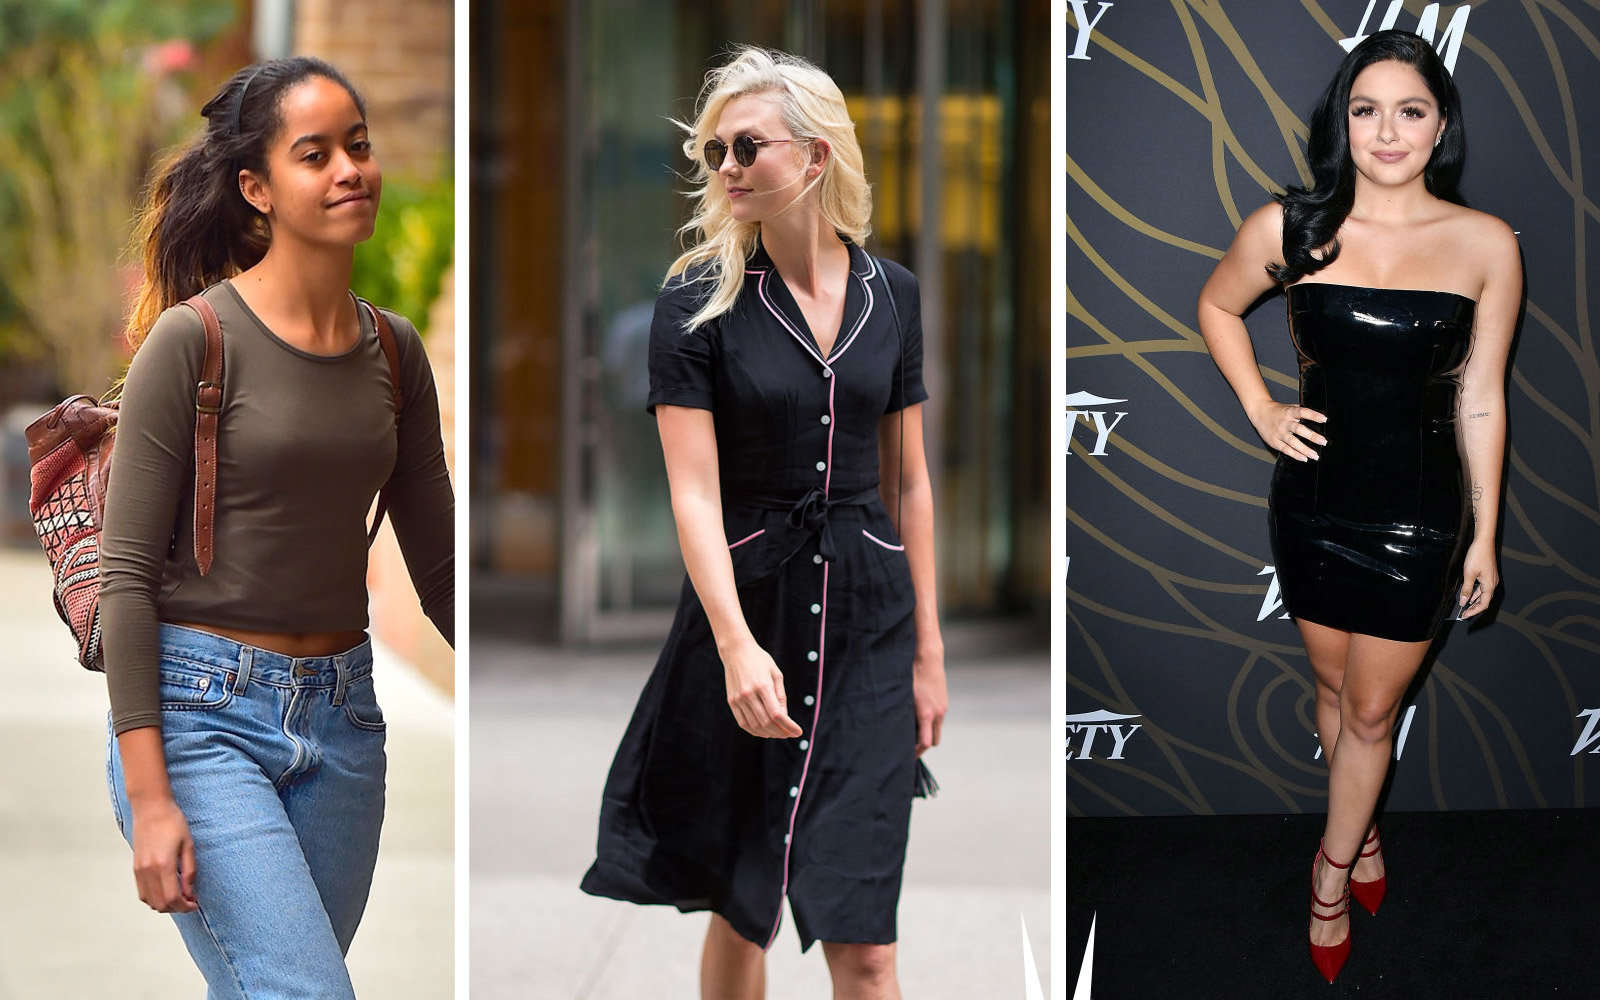 Malia Obama, Karlie Kloss, Ariel Winter